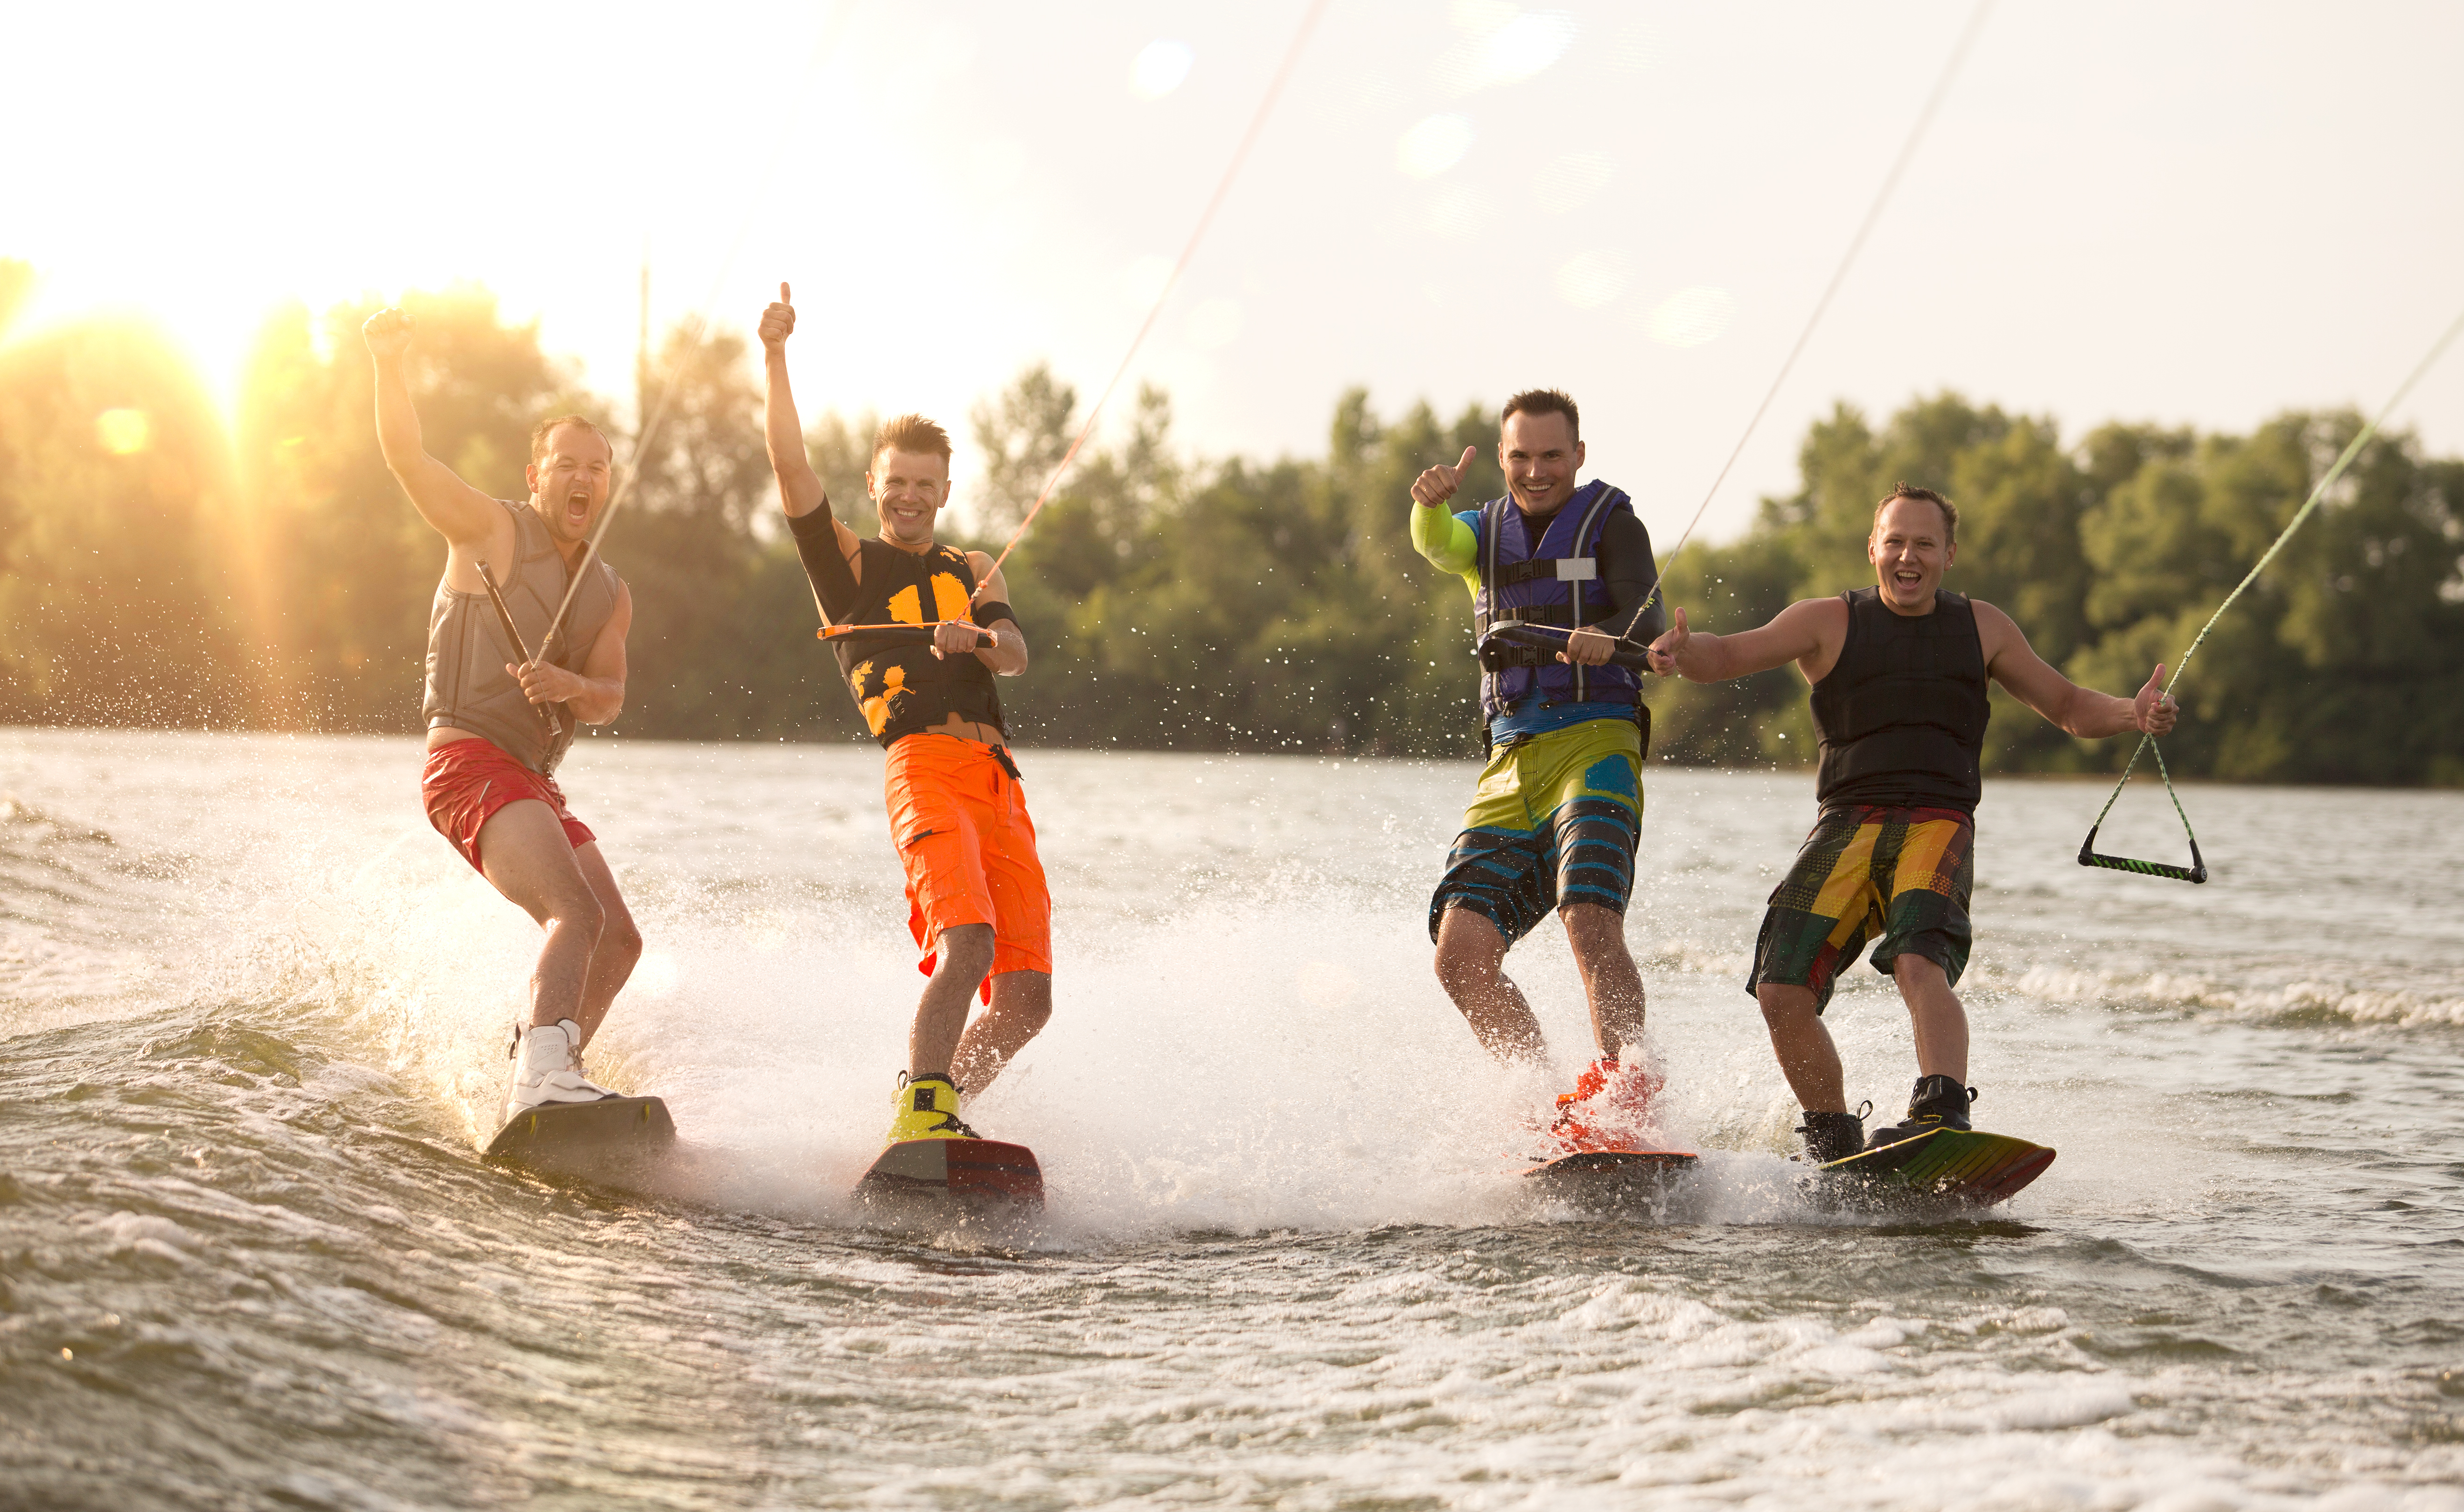 Four wake bord riders are having the fun